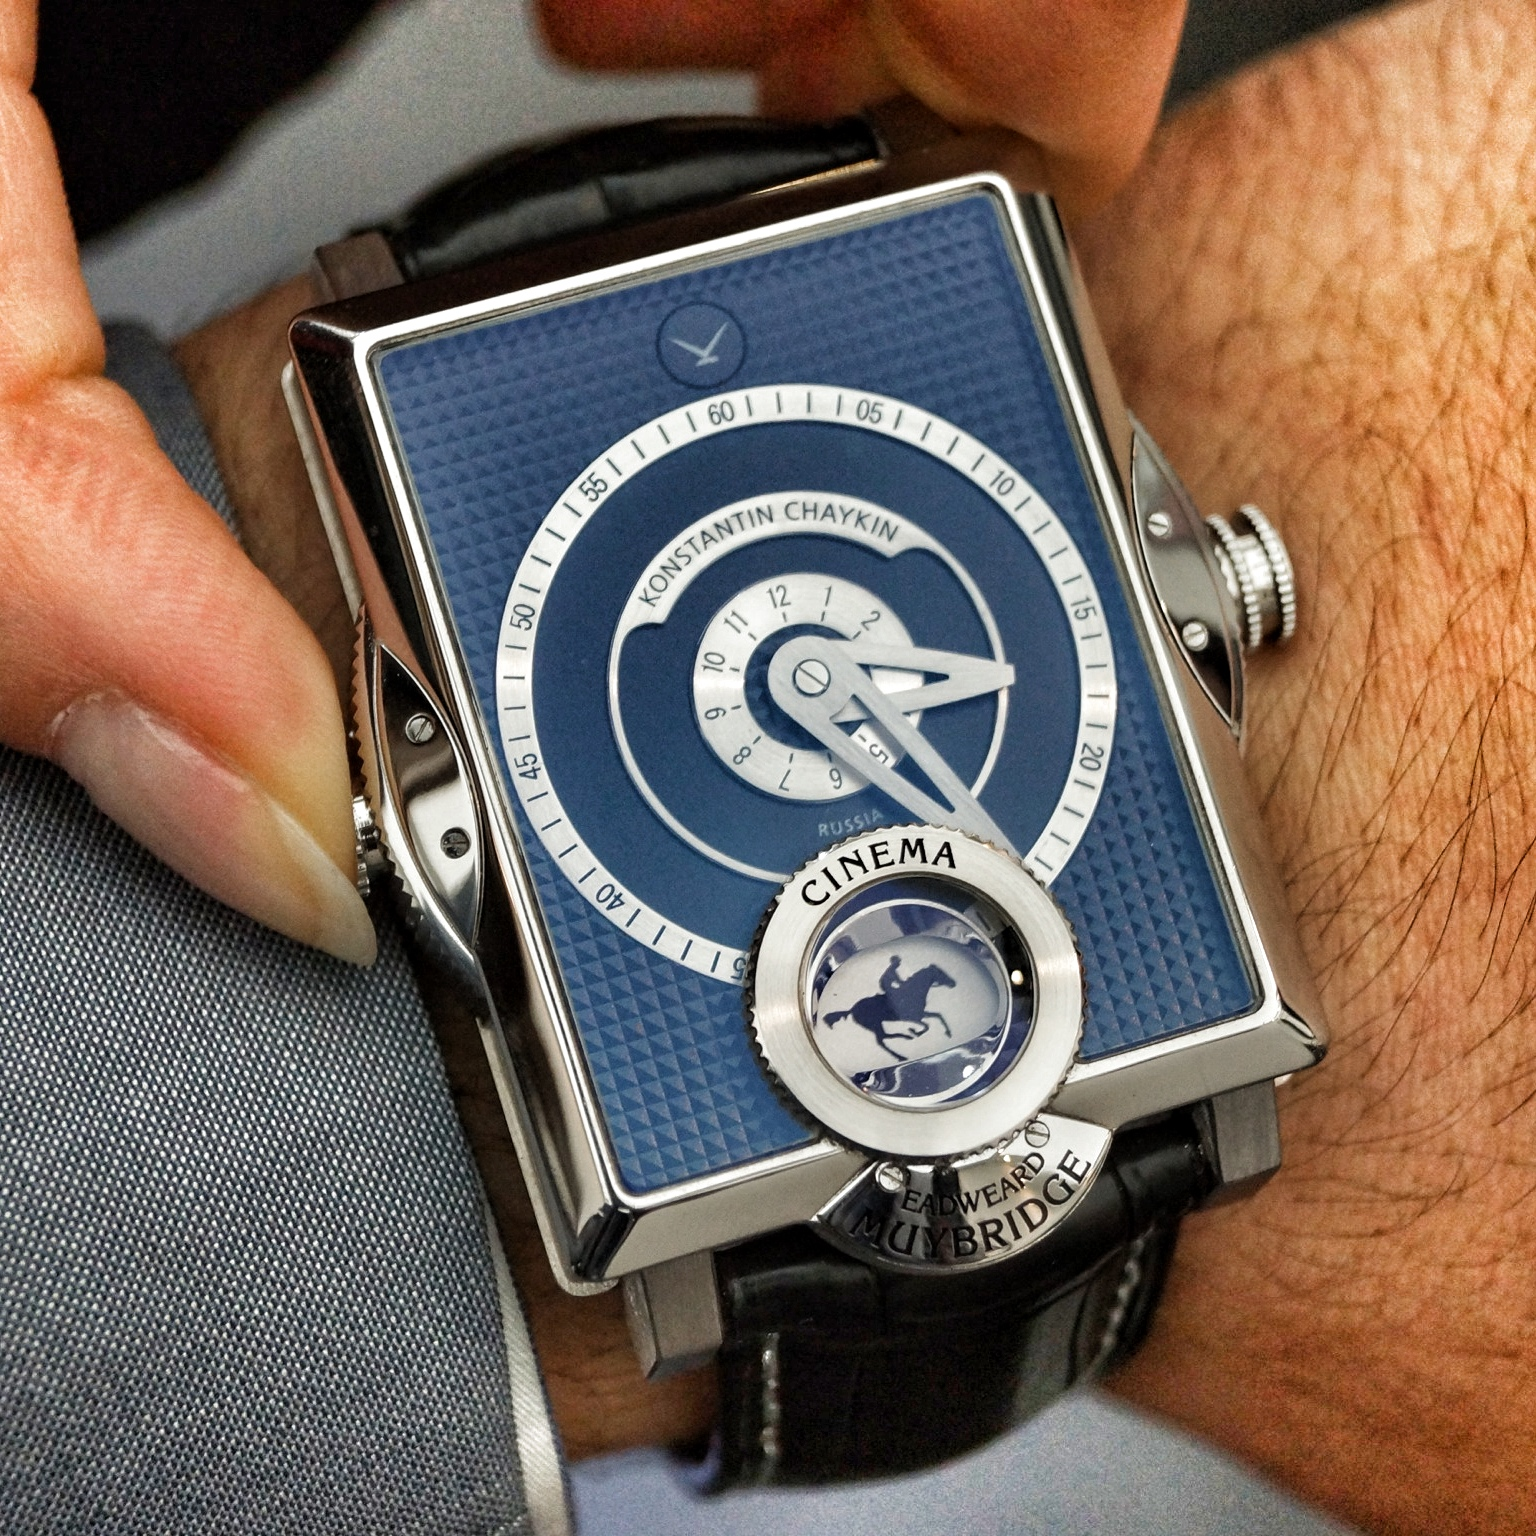 Konstantin Chaykin - Cinema Watch